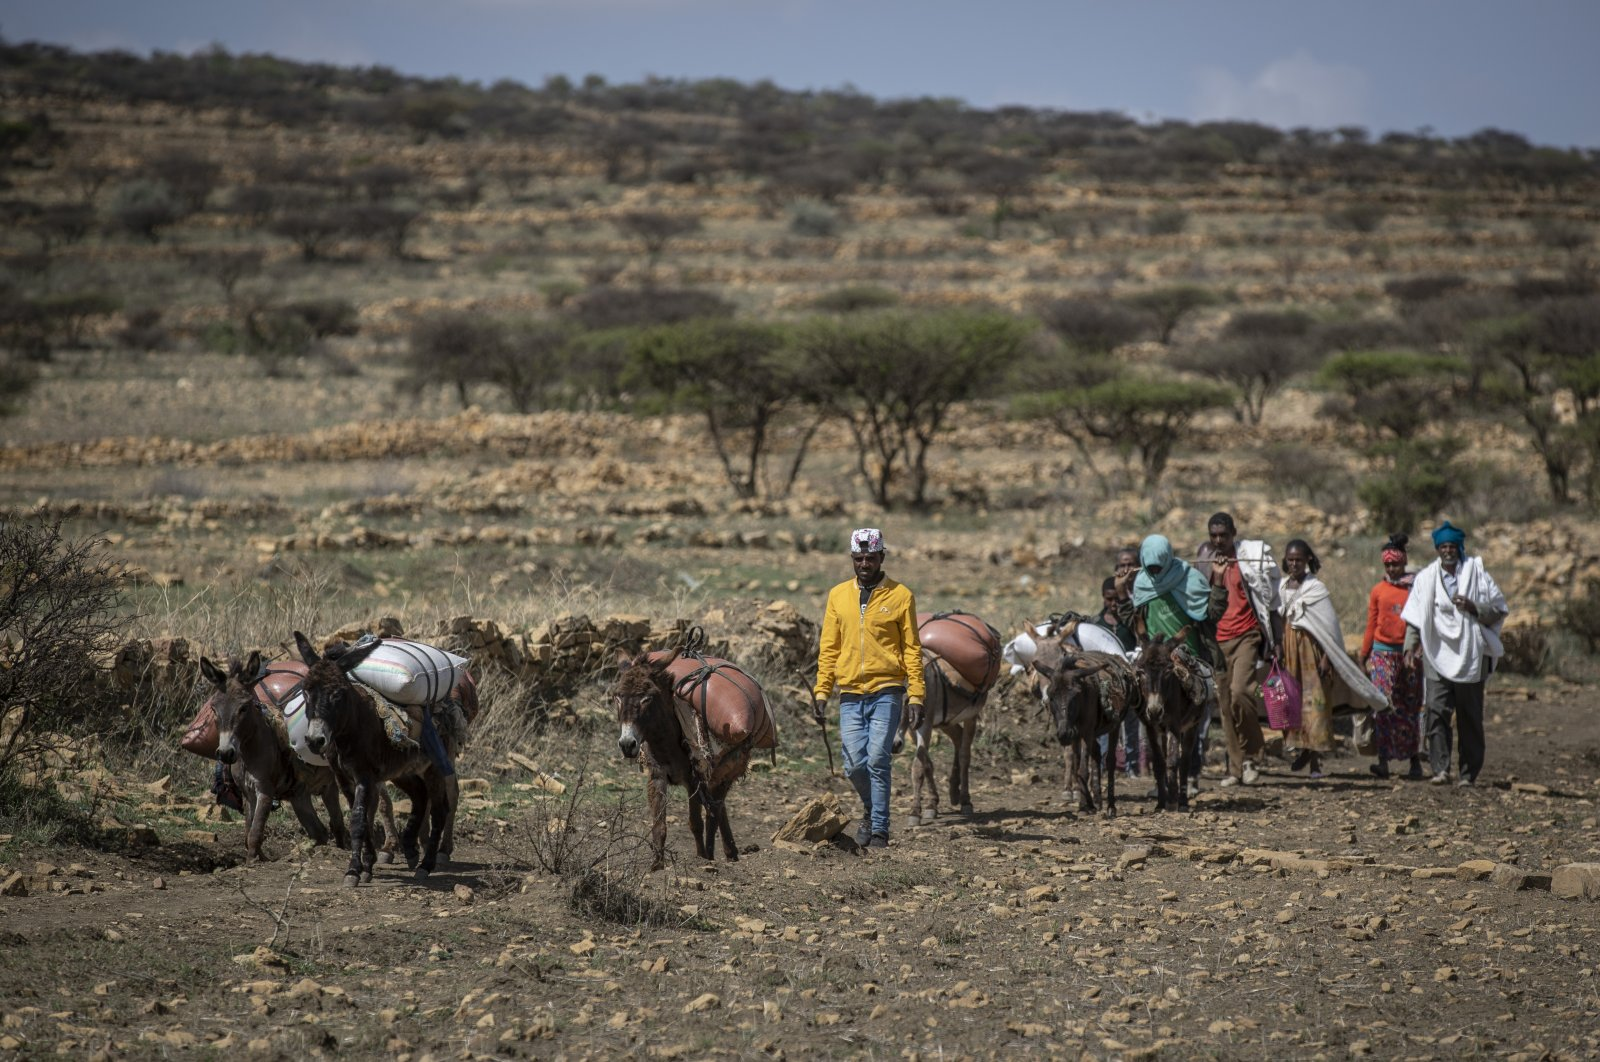 People walk from a rural area towards a nearby town housing a food distribution center operated by the Relief Society of Tigray, near the town of Agula, in the Tigray region of northern Ethiopia, May 8, 2021. (AP Photo)